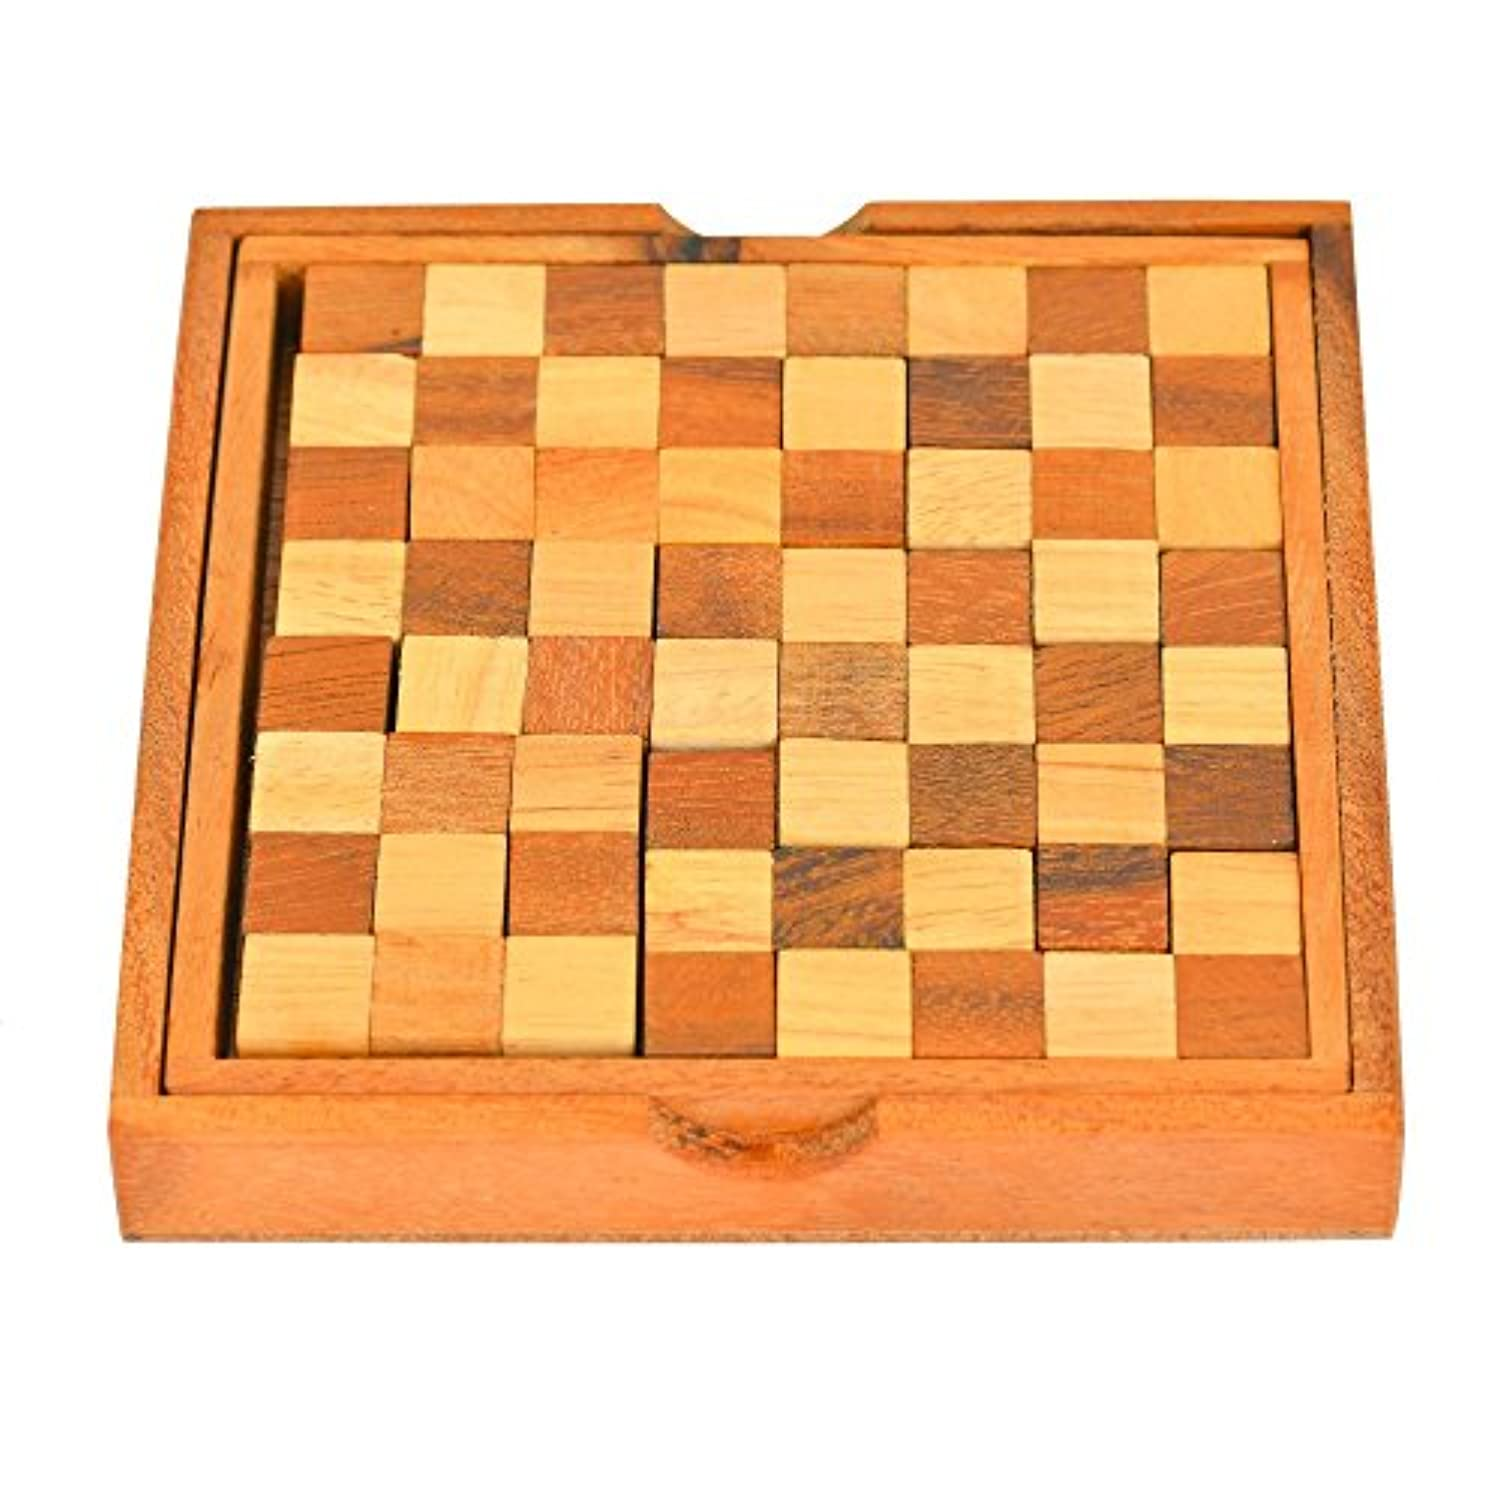 BRAIN GAMES Pento Chess Puzzle 5 Inch